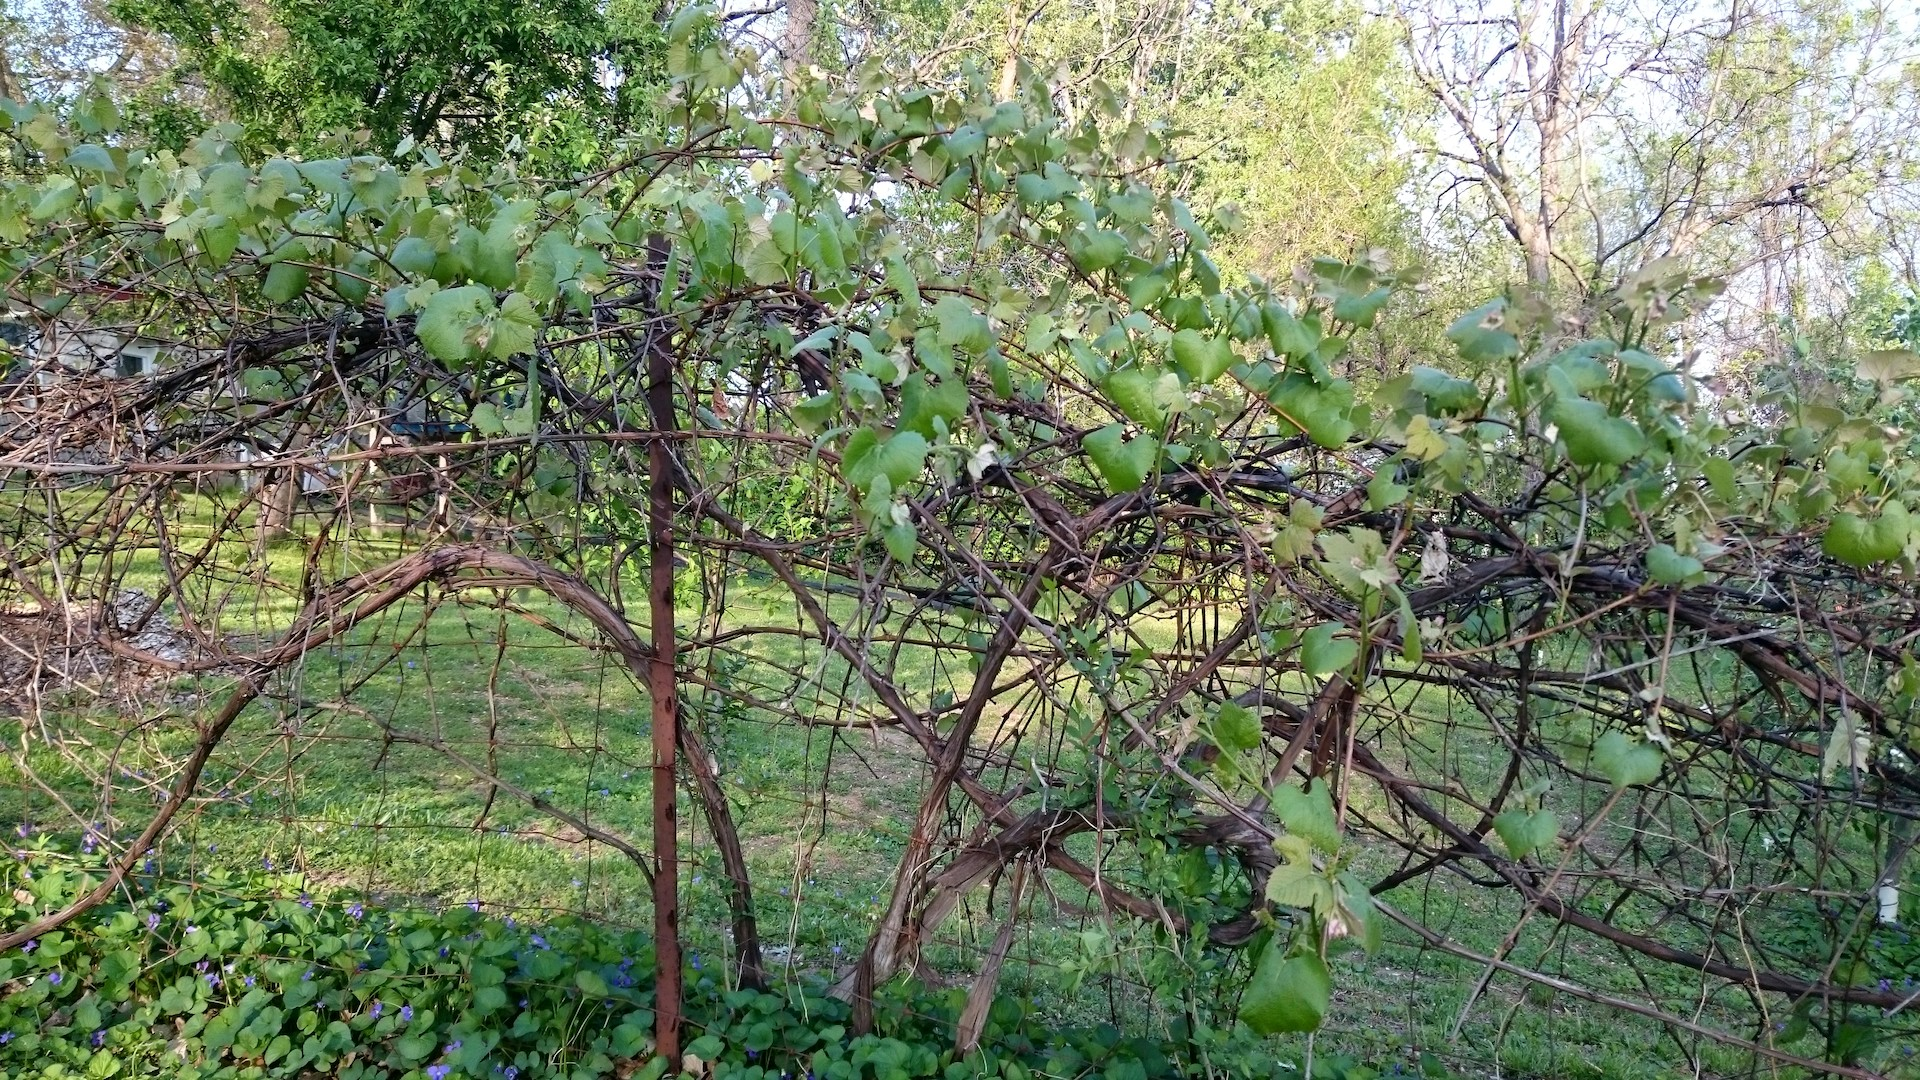 Grape Vine Growing on Fence